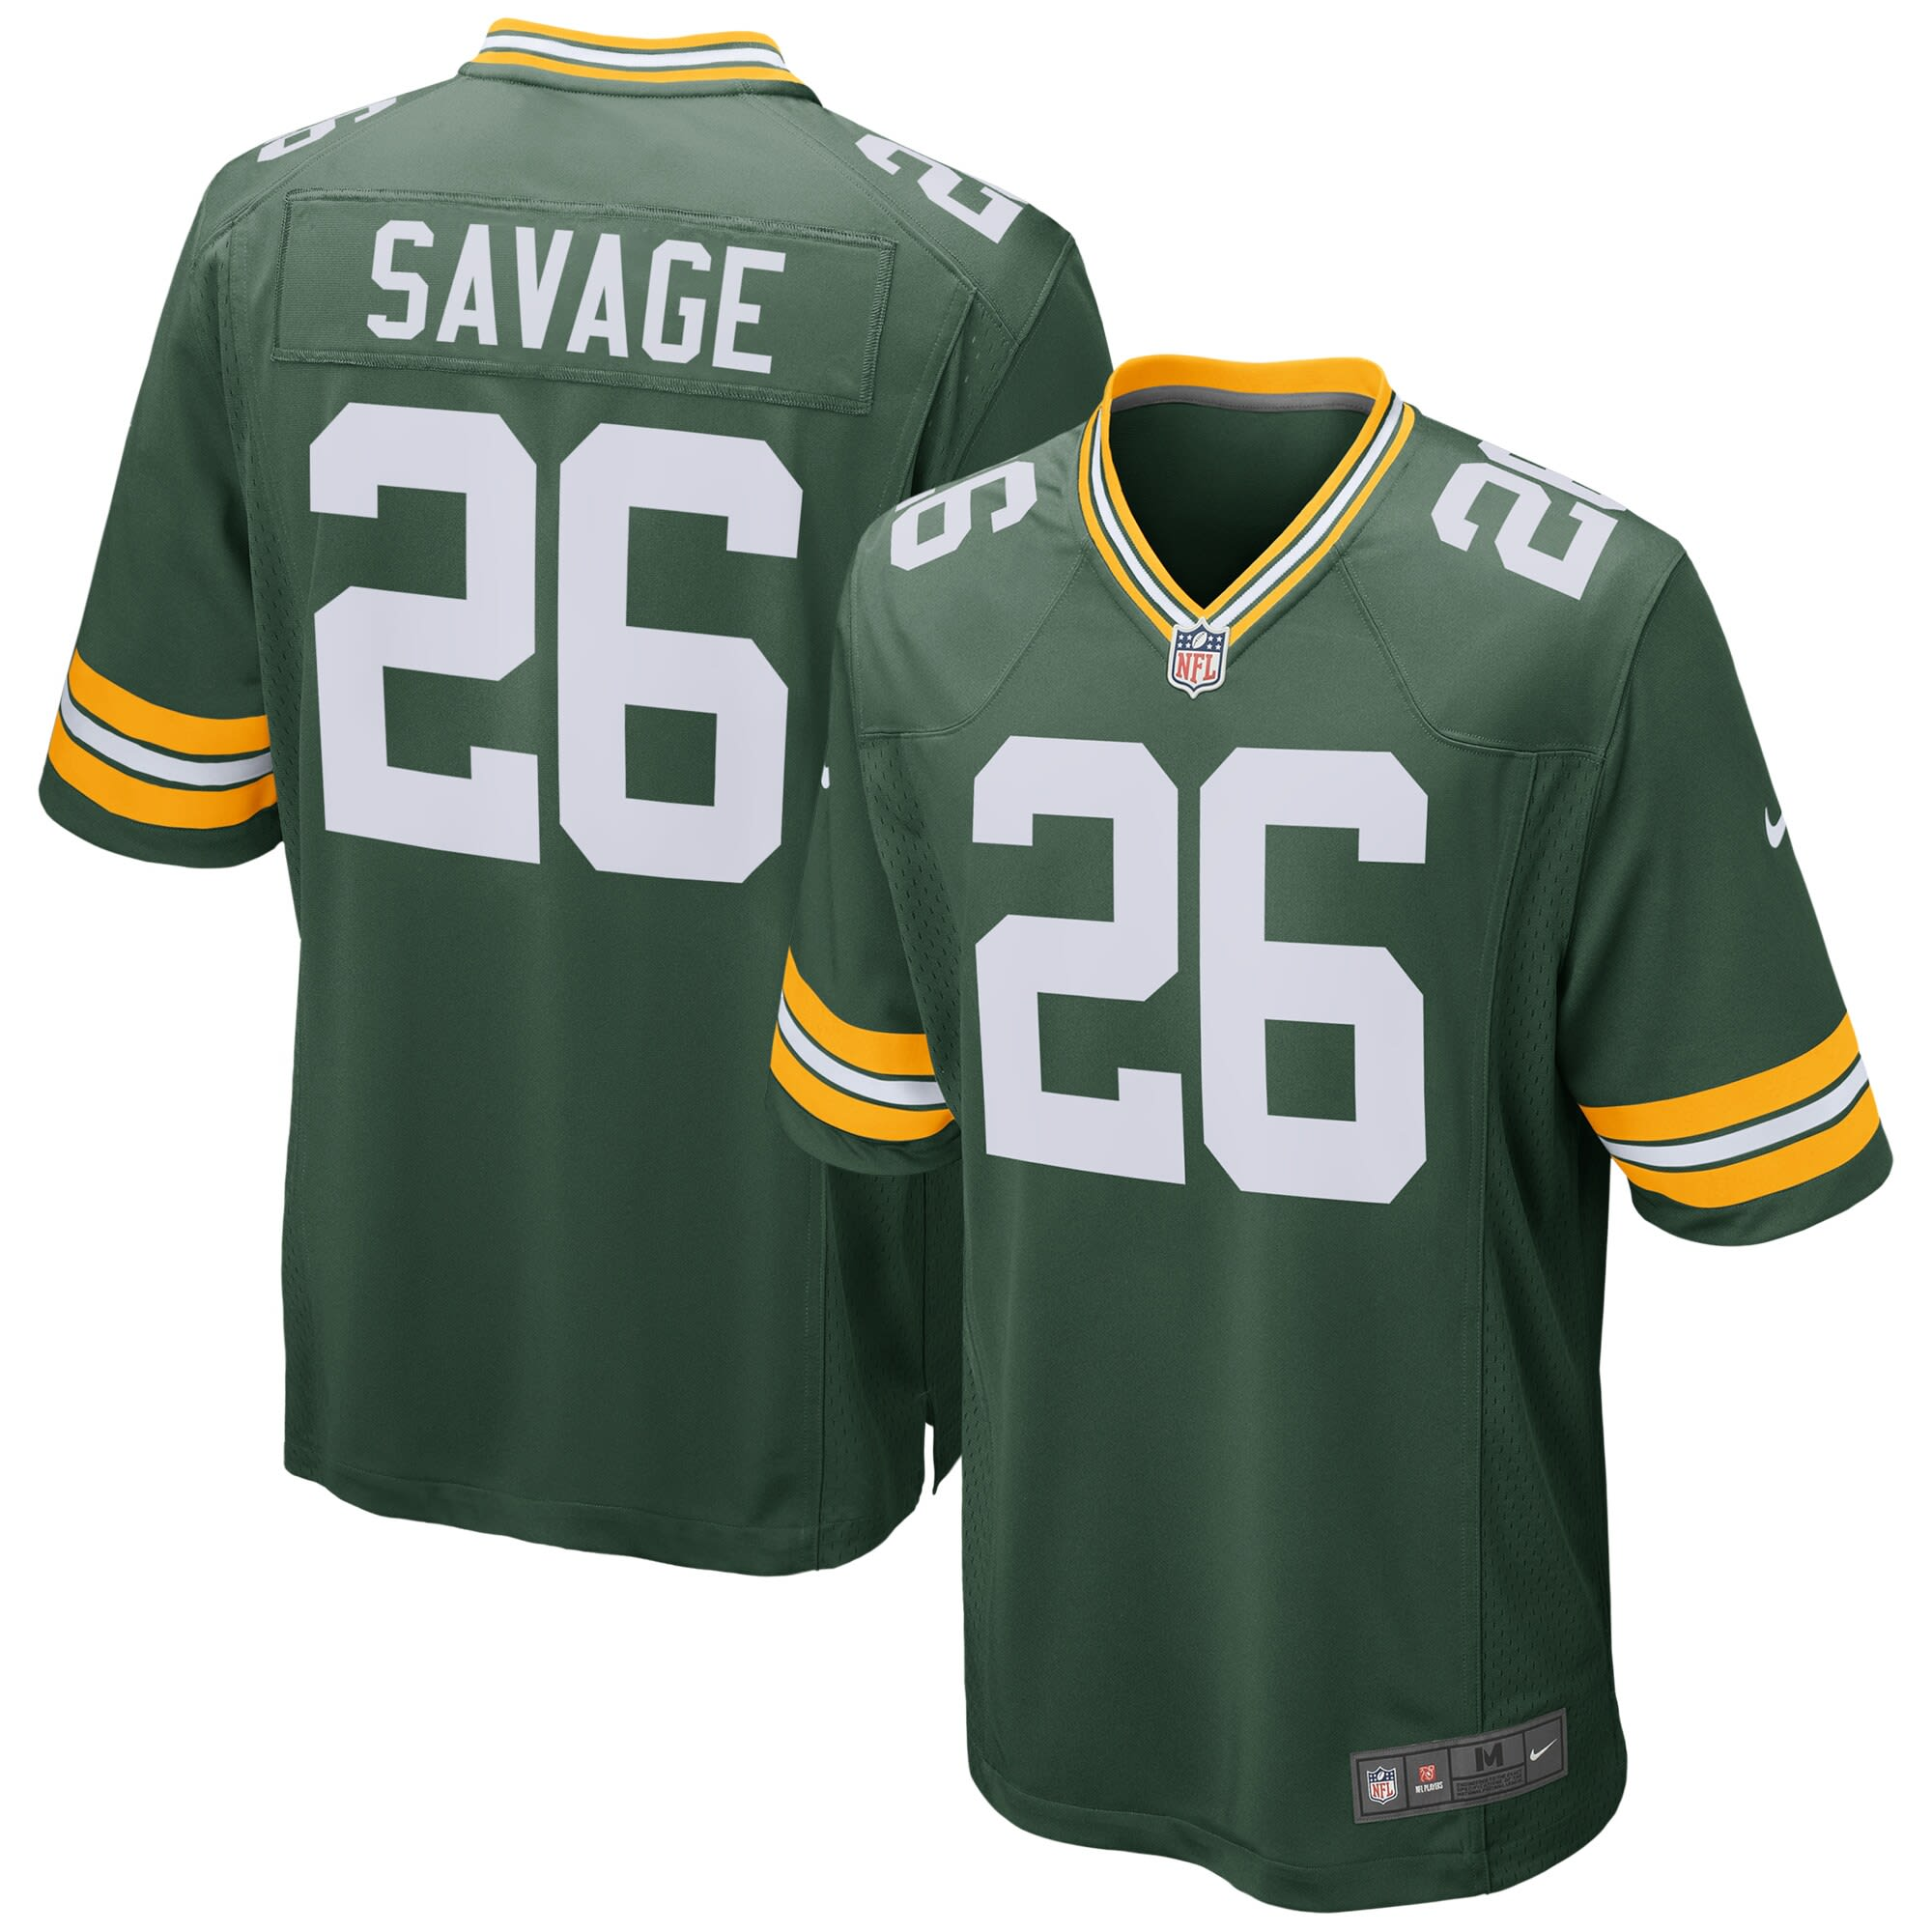 The 7 coolest Green Bay Packers jerseys you can get now